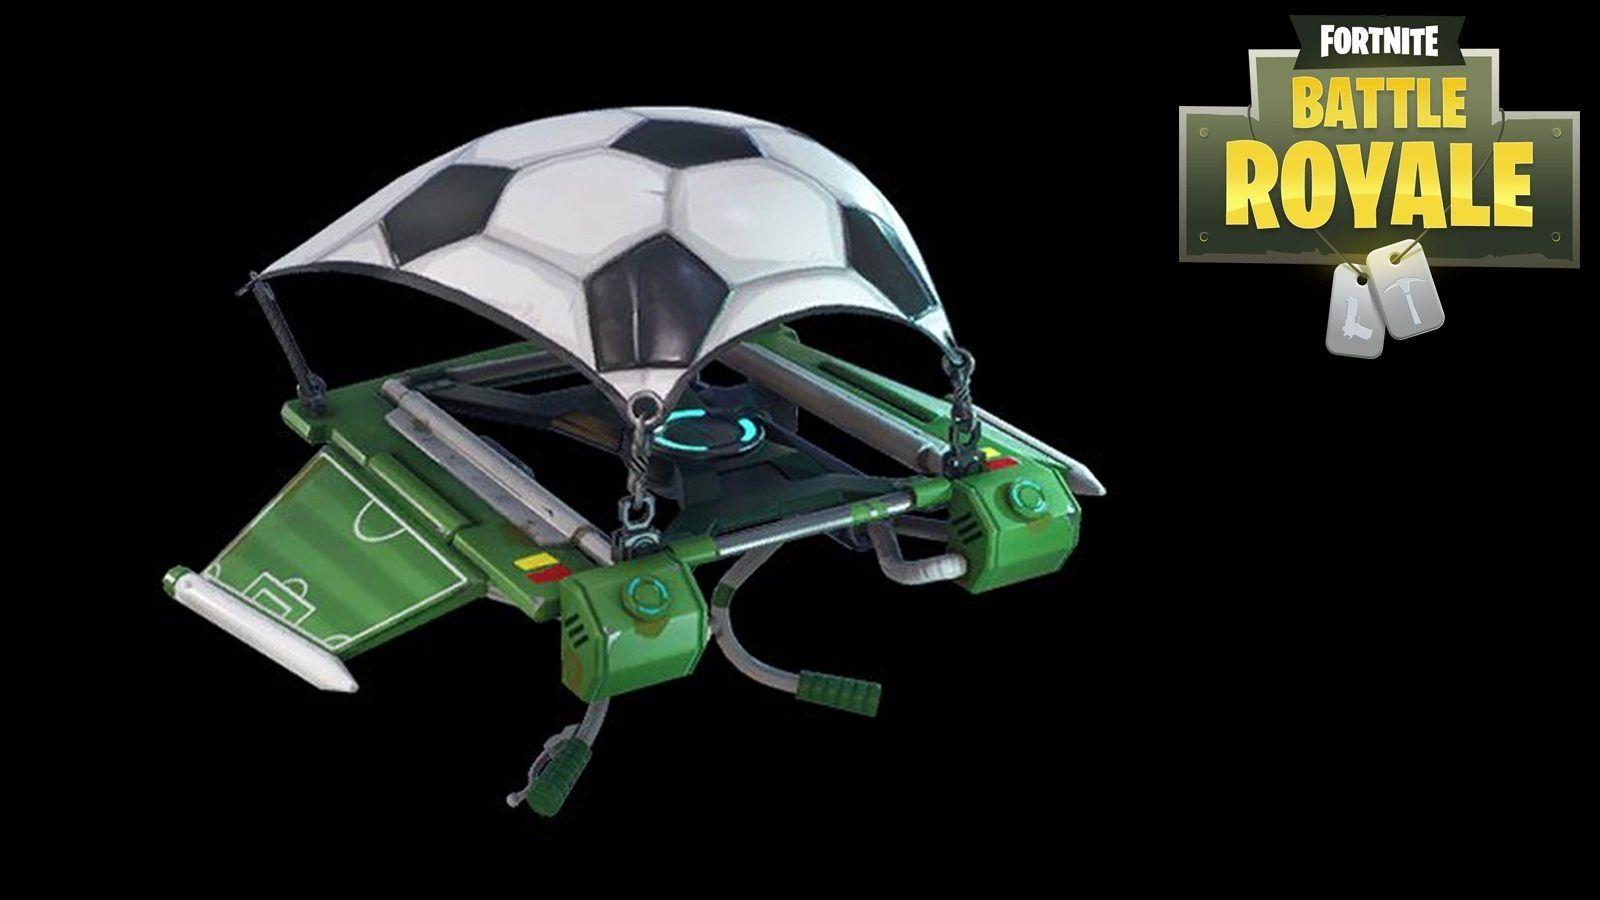 Leaked Fortnite Skins and Emotes in Update V.4.4 Show Soccer Theme